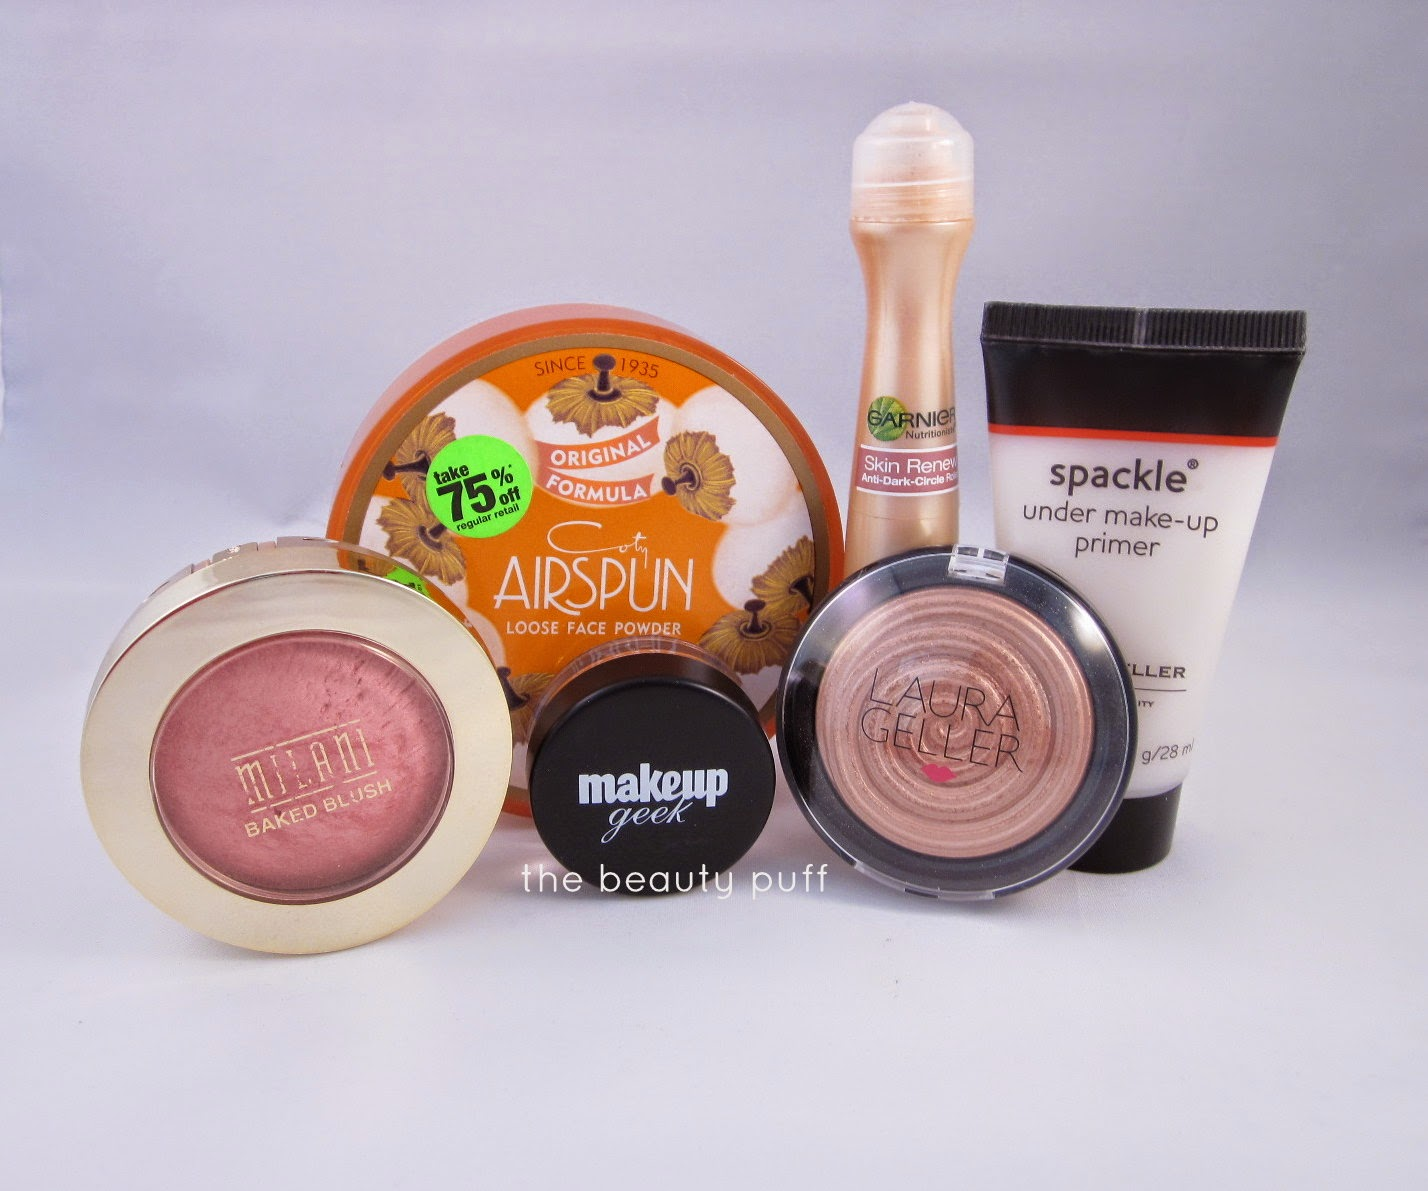 spring makeup products - the beauty puff